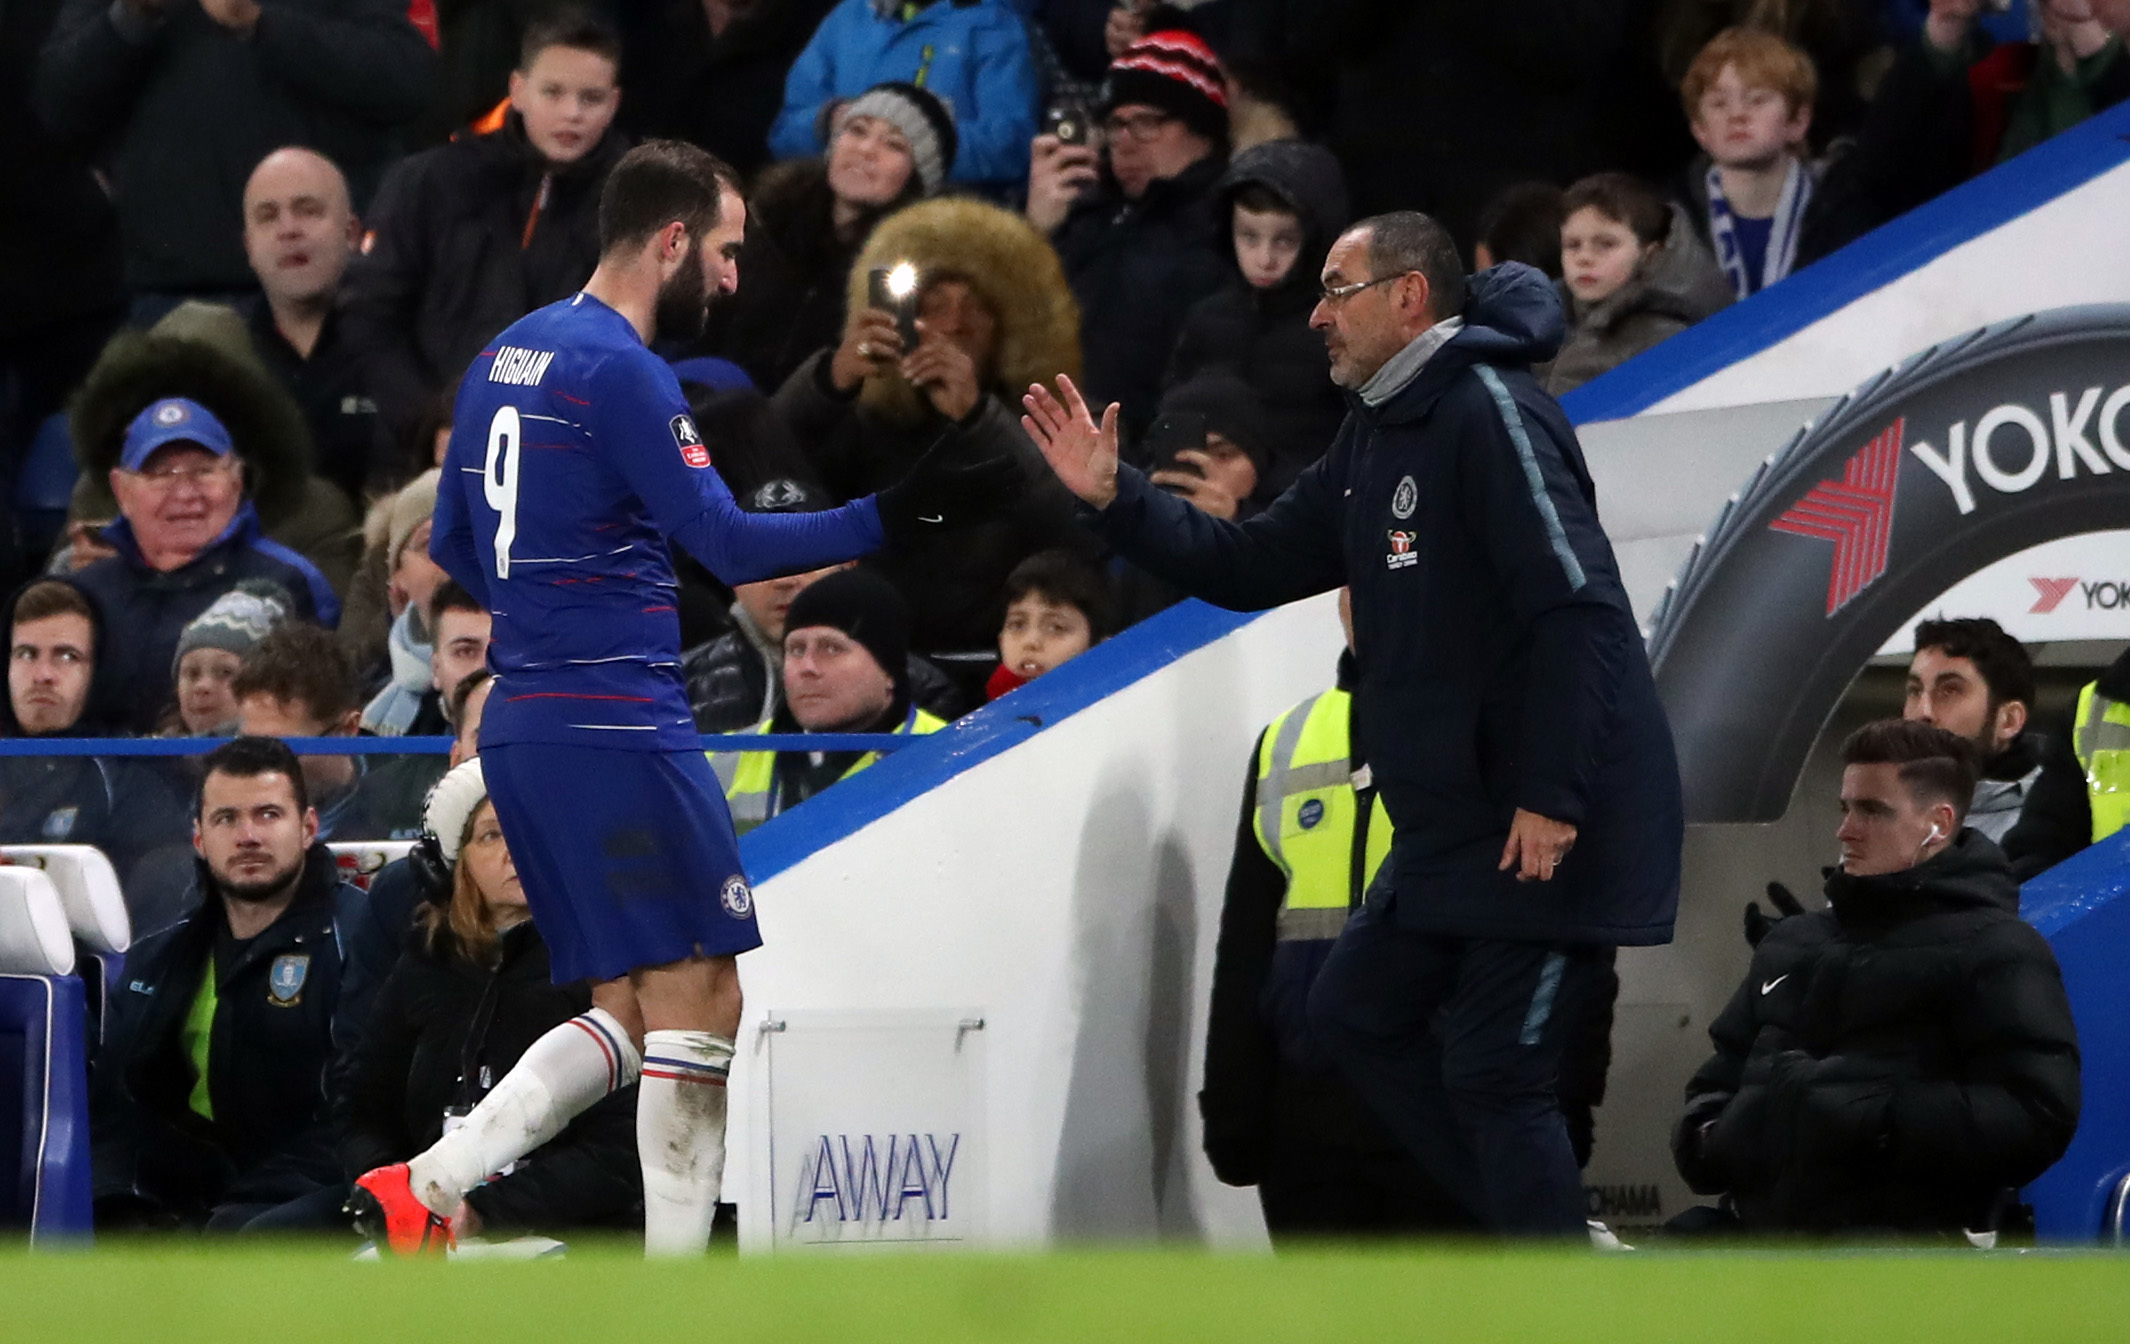 Dublin: Chelsea players unhappy with Sarri's public criticism